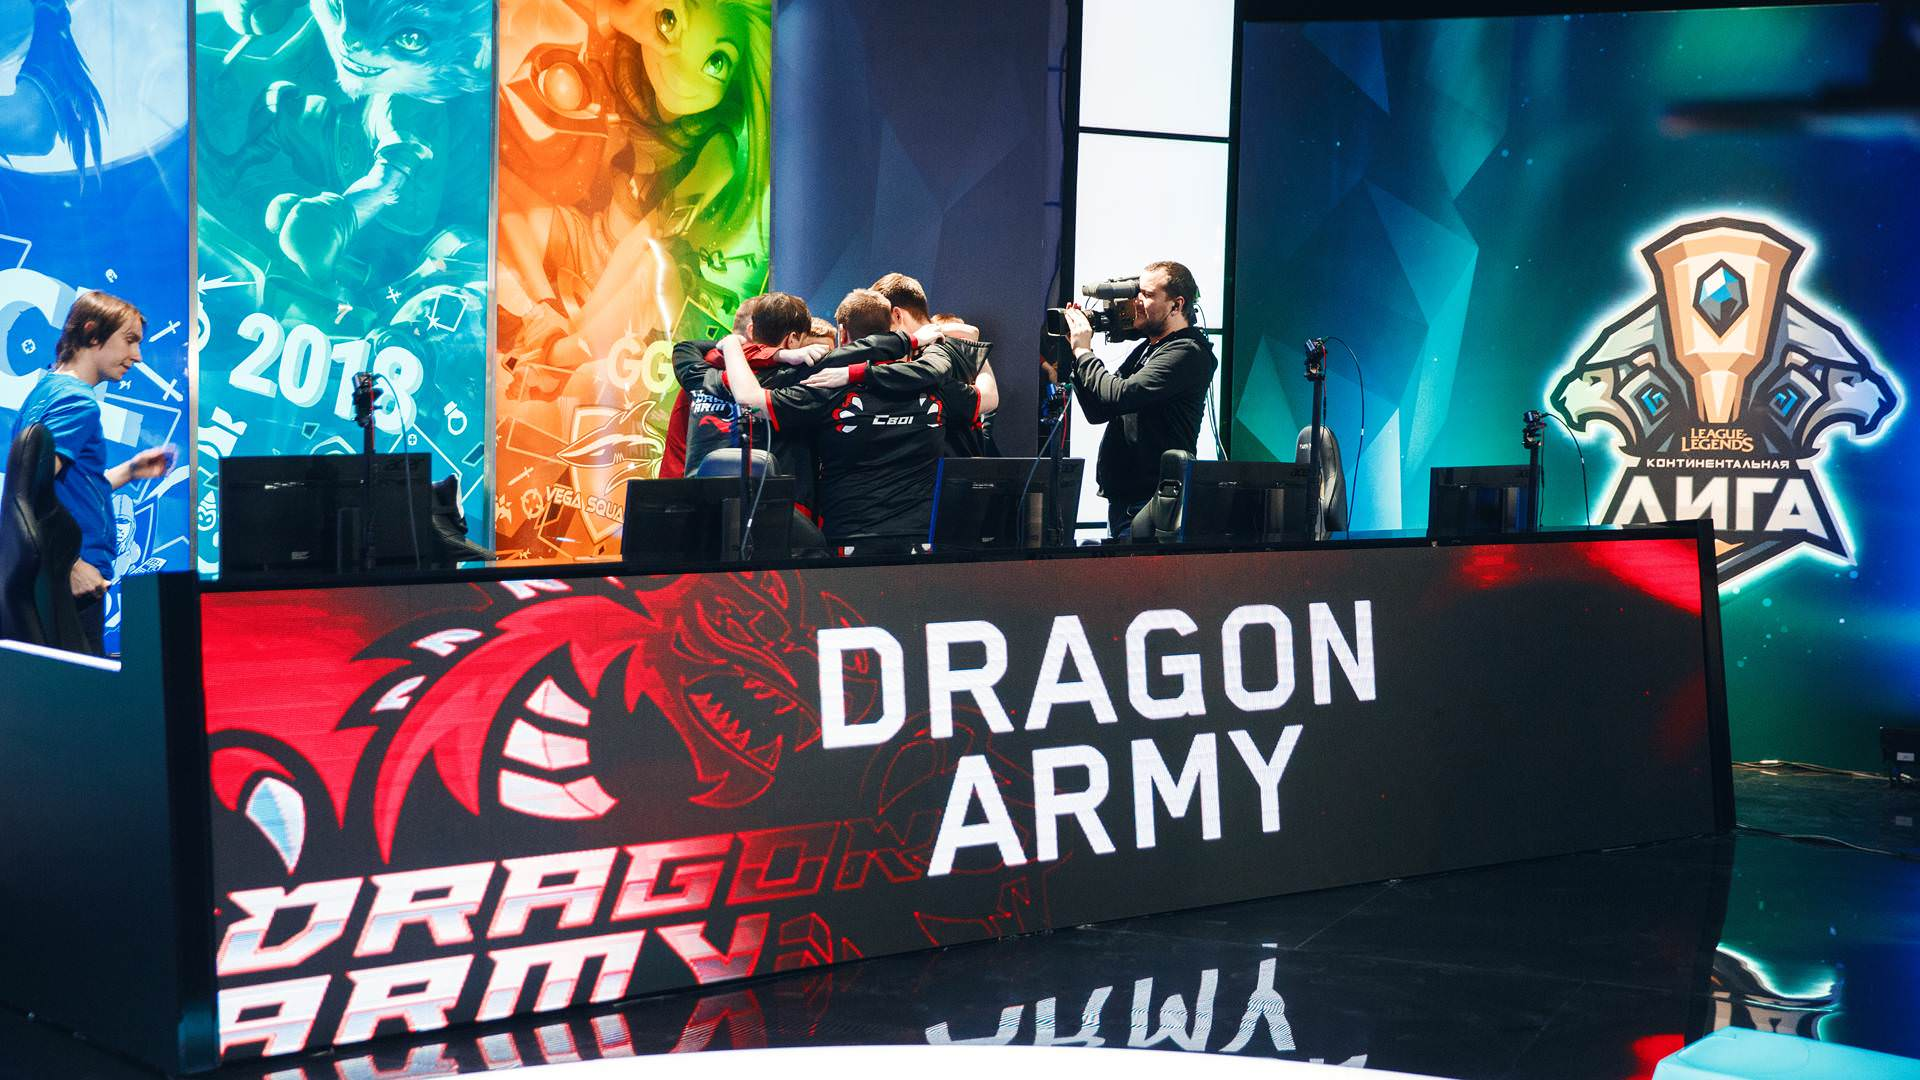 Dragon Army.